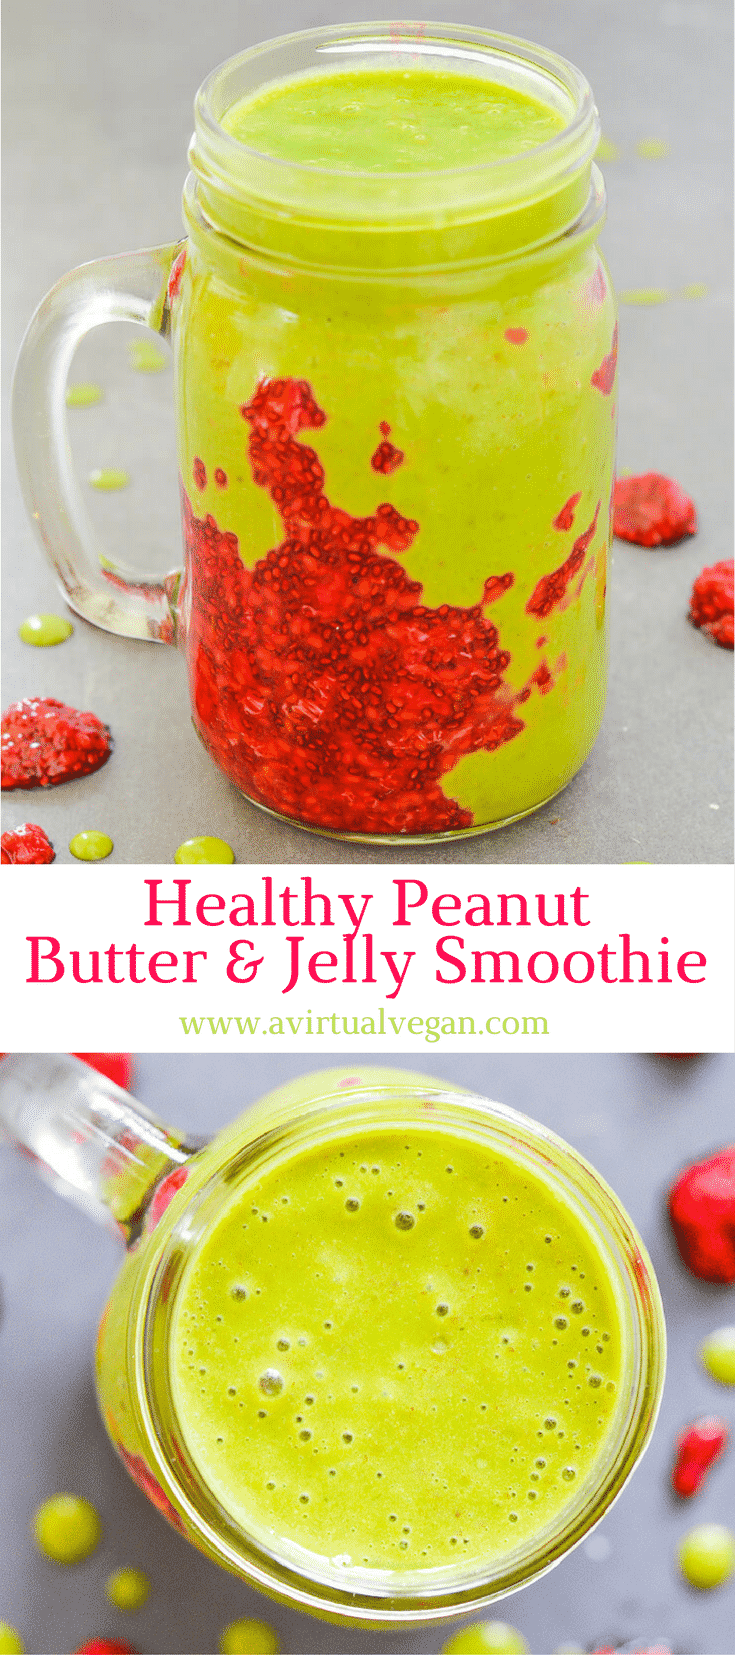 A sweet, creamy Peanut Butter & Jelly Smoothie stuffed with all sorts of healthy ingredients plus a beautiful smear of homemade raspberry chia jam. The perfect satisfying breakfast or snack with a whopping 8 grams of protein!